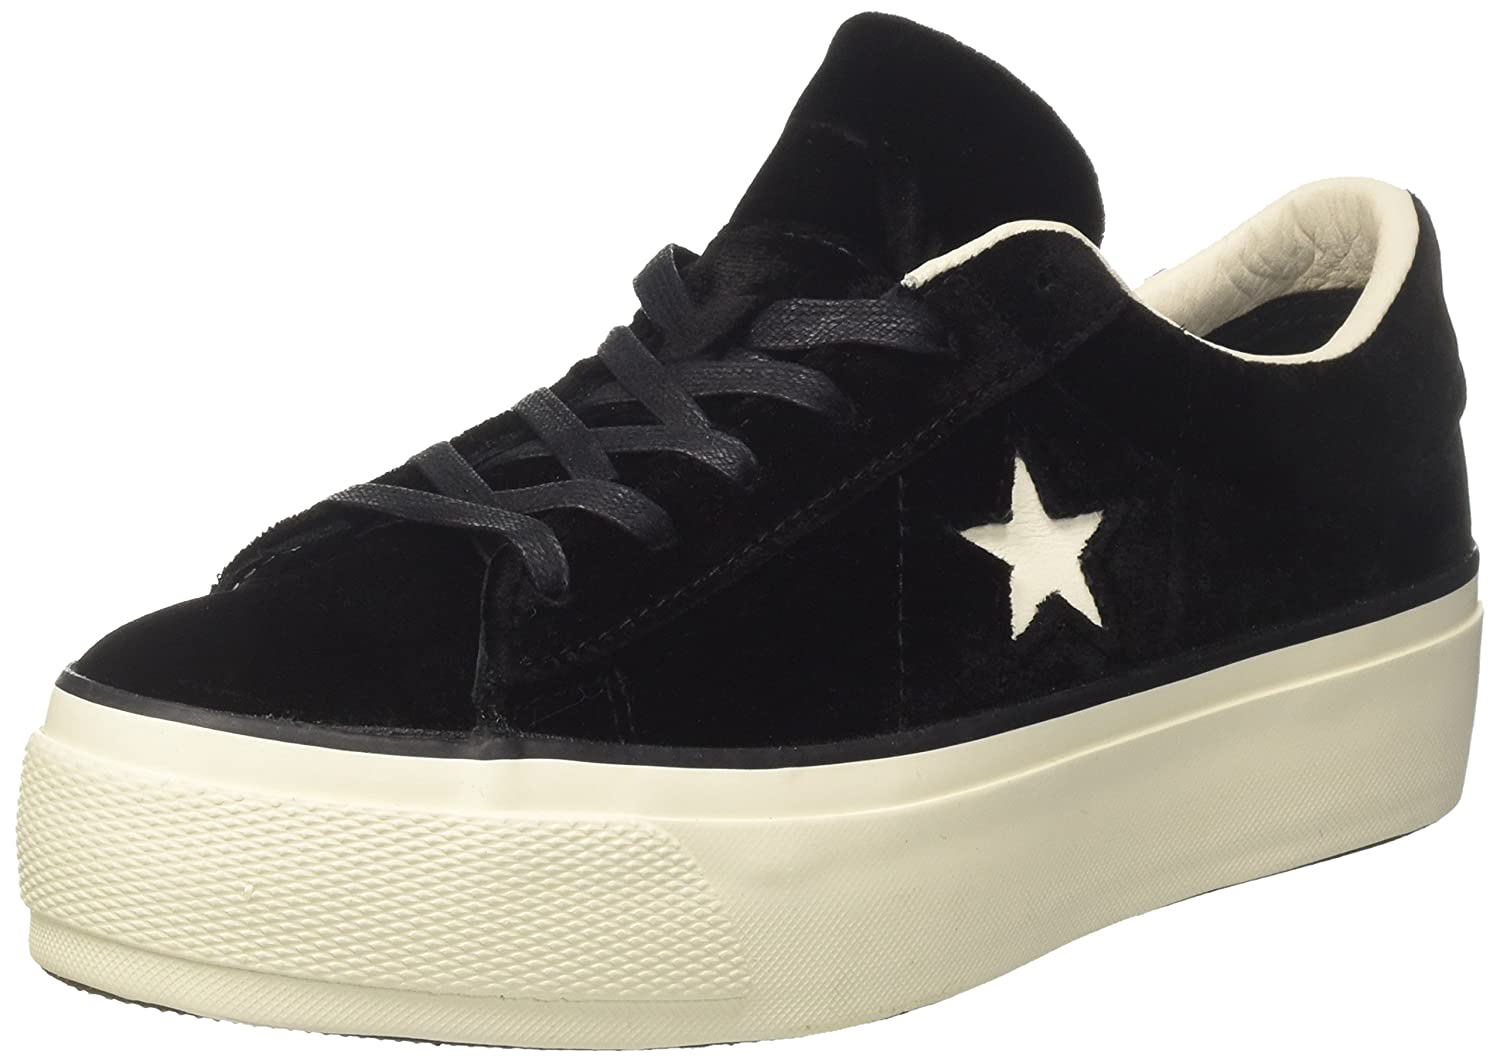 Converse One Star, Women's Gymnastics Shoes